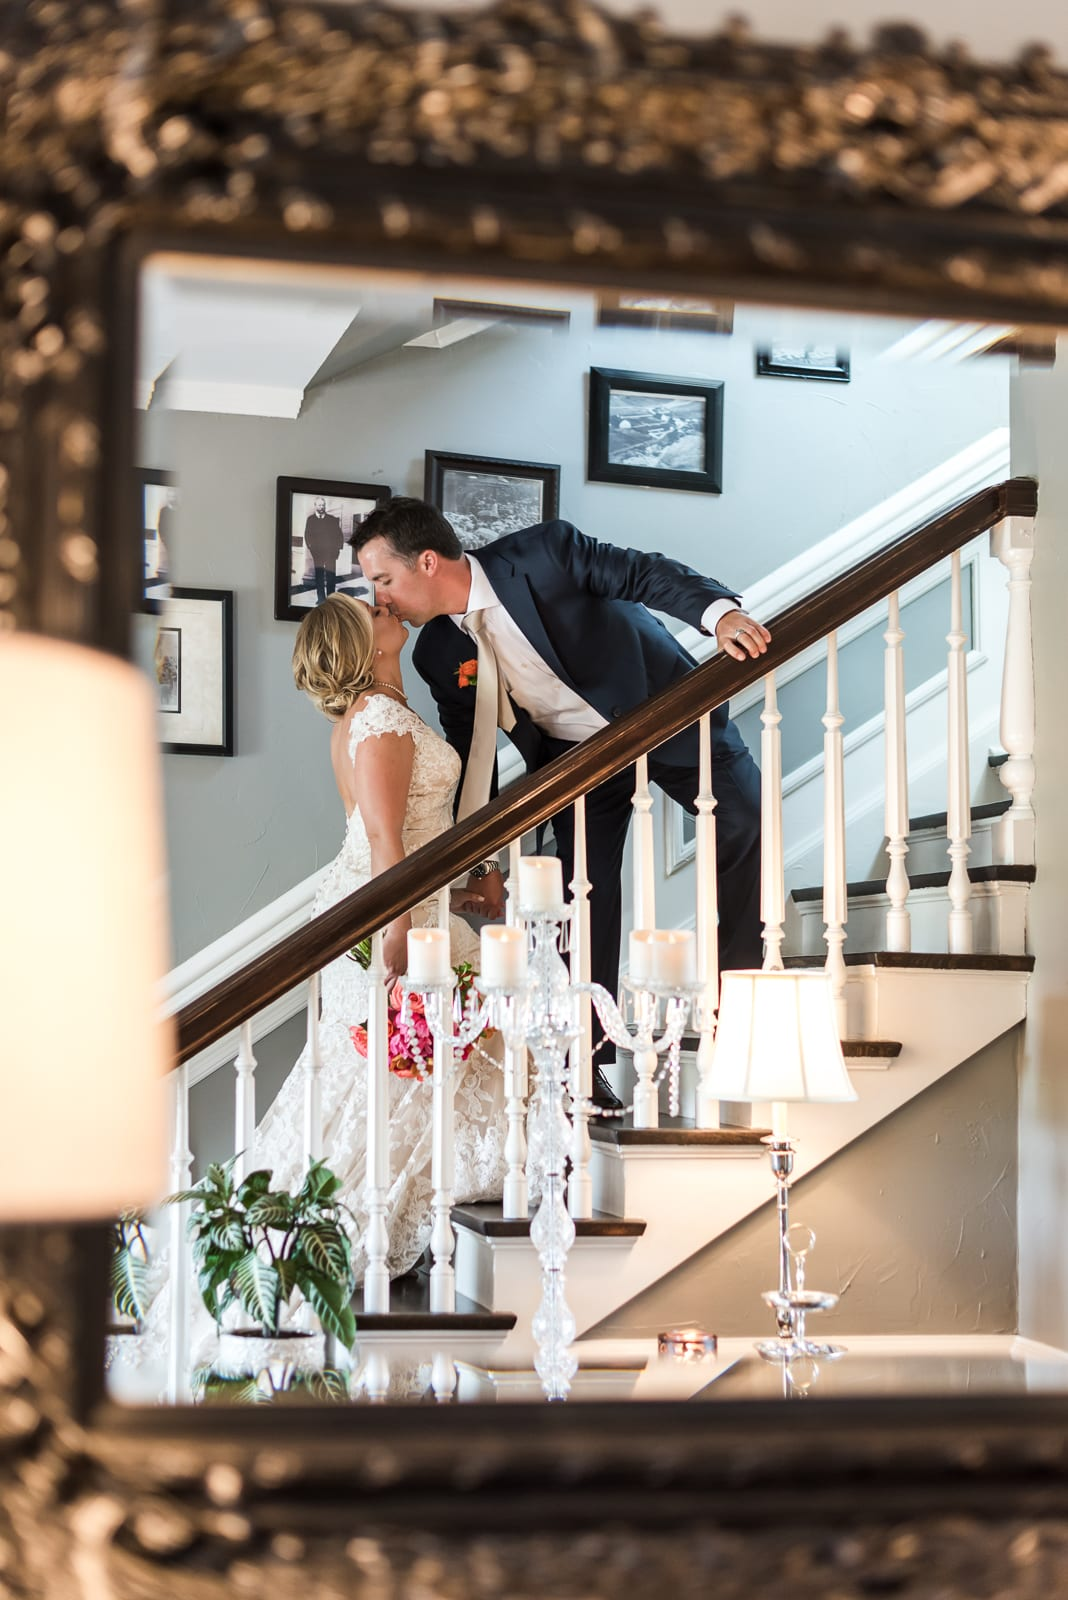 fairytale wedding | Wedding Photography | Manor House | From the Hip Photo